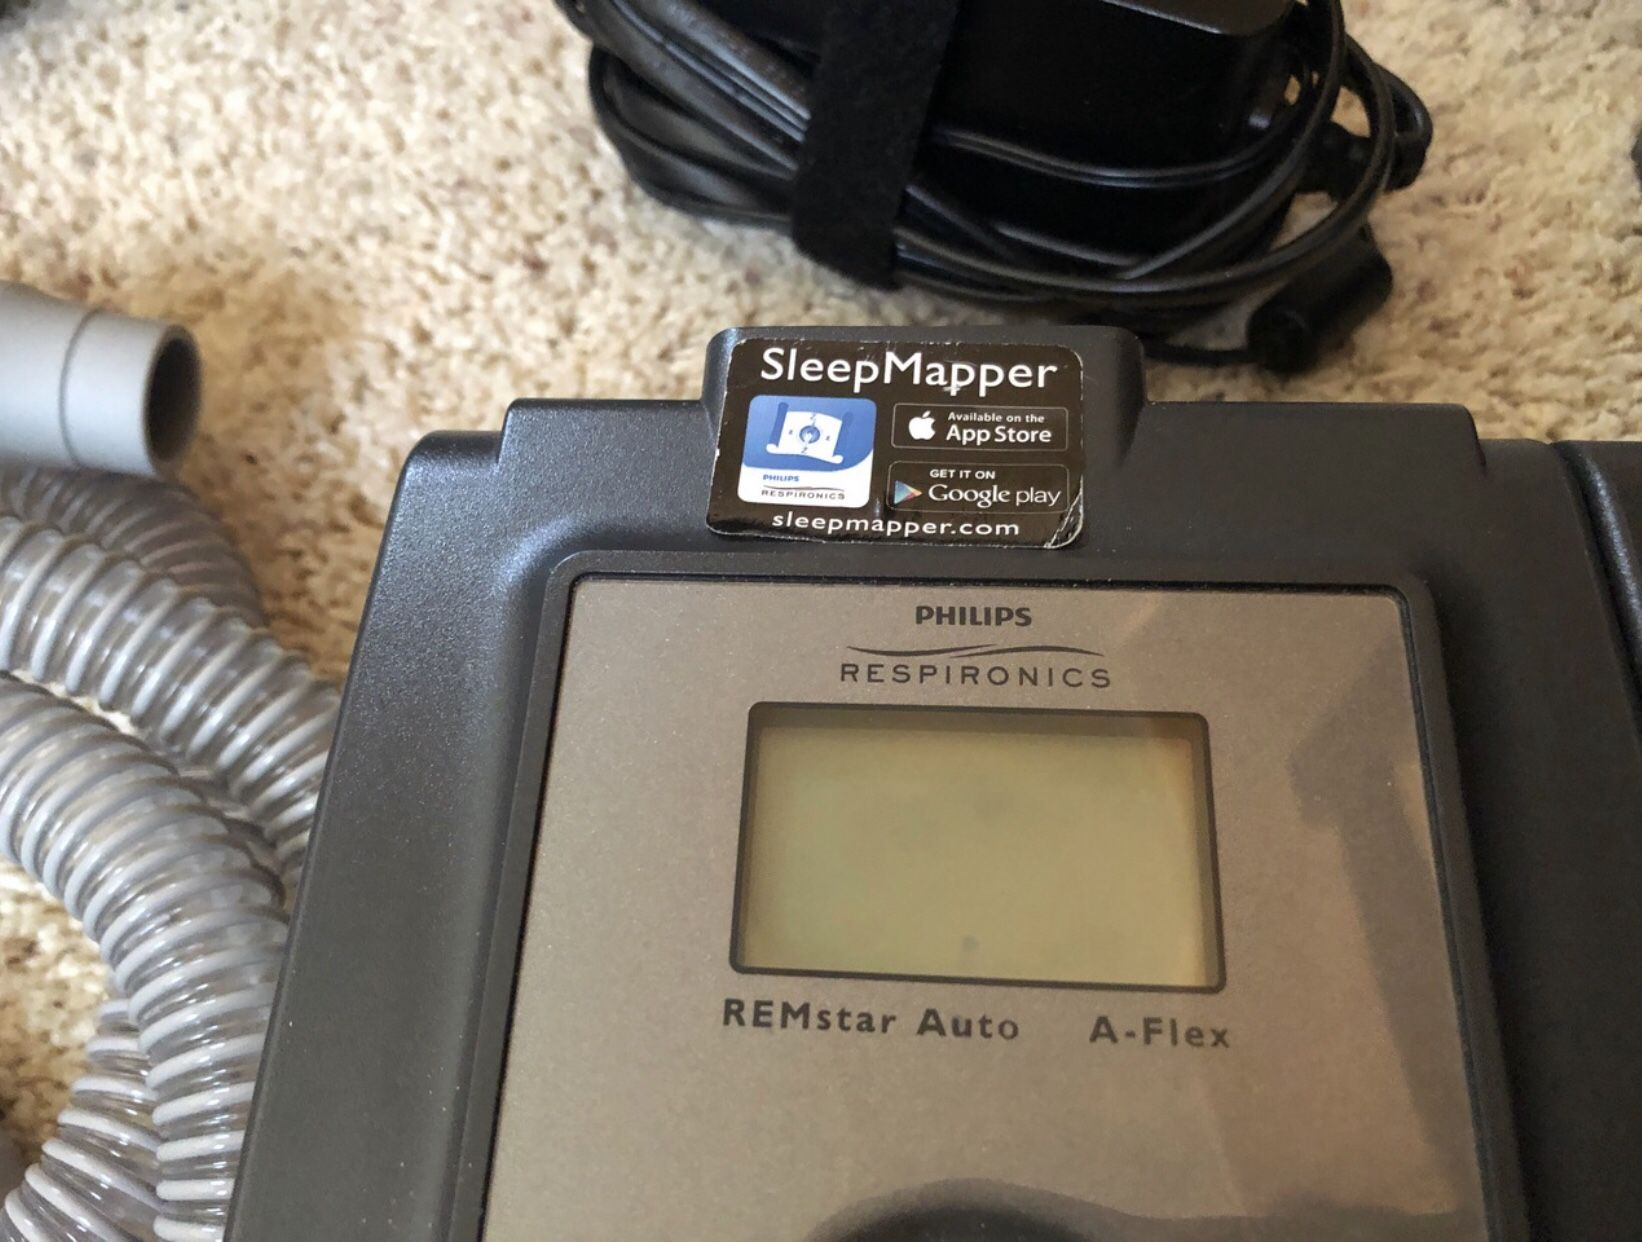 REMstar series CPAP Machines by Philips Respironics